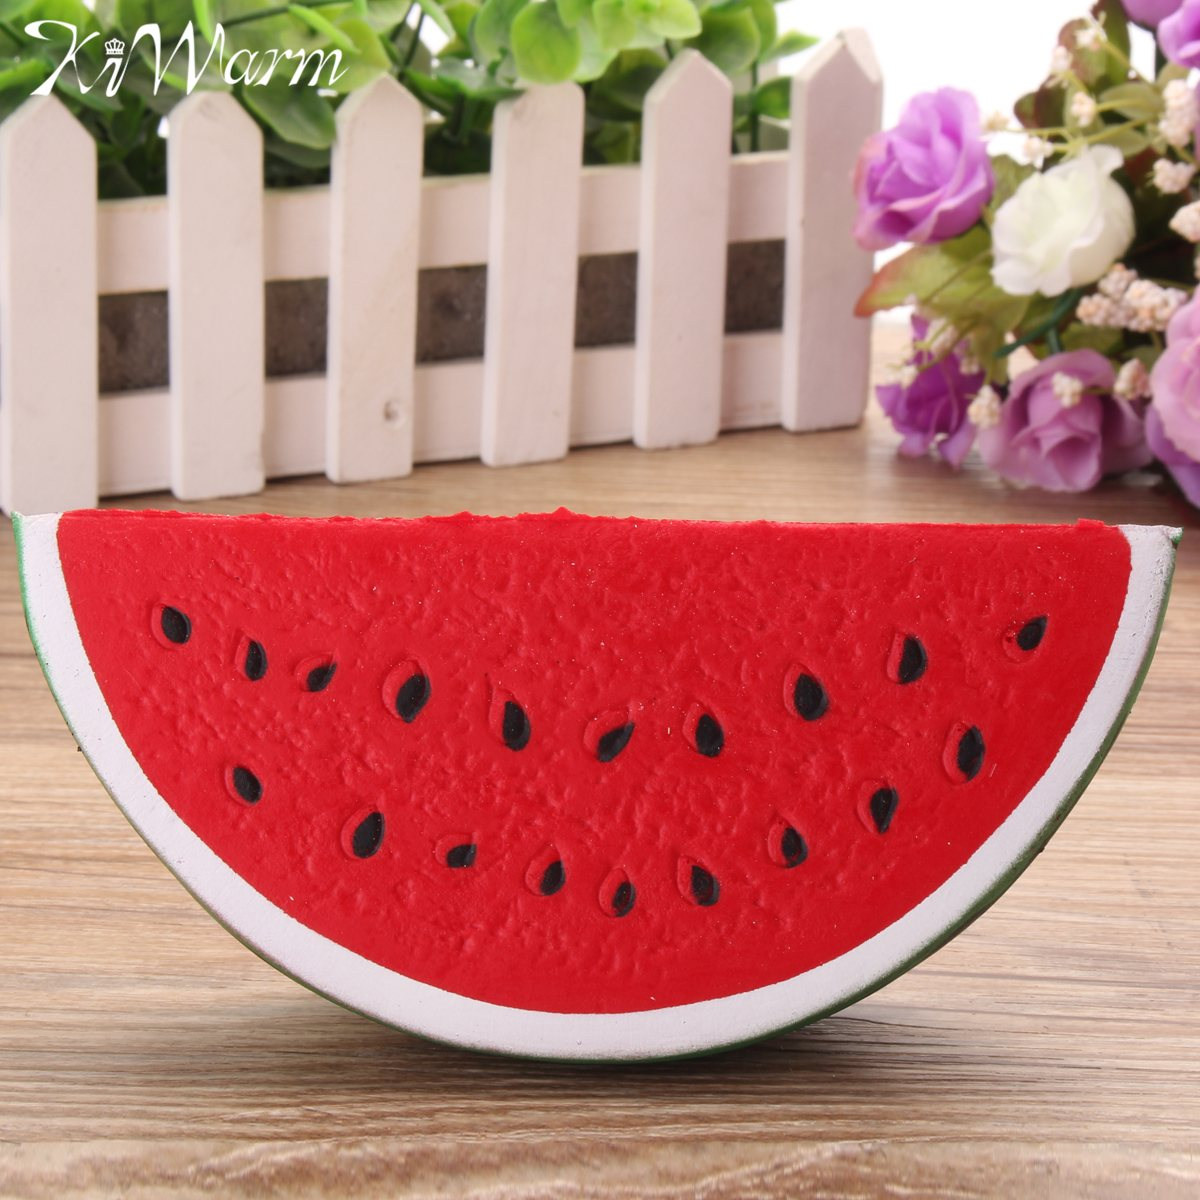 KiWarm Interesting Watermelon Slow Raising Stress Reliever Healing Toy Squeeze Fun Kid Gift Home Ornament Craft